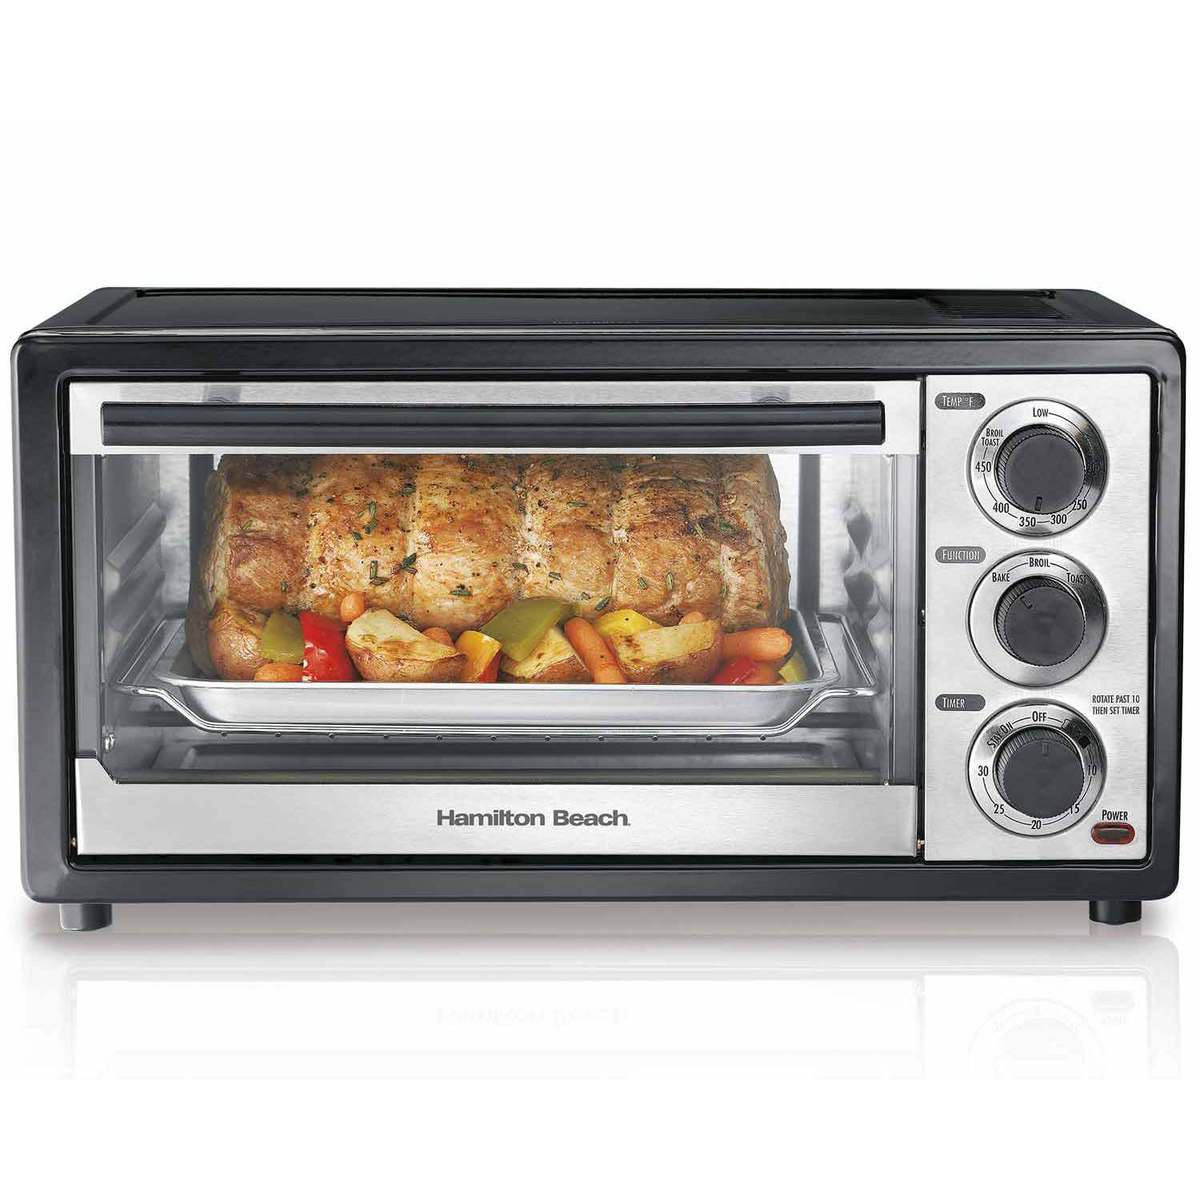 6 Slice Capacity Toaster Oven (31508)